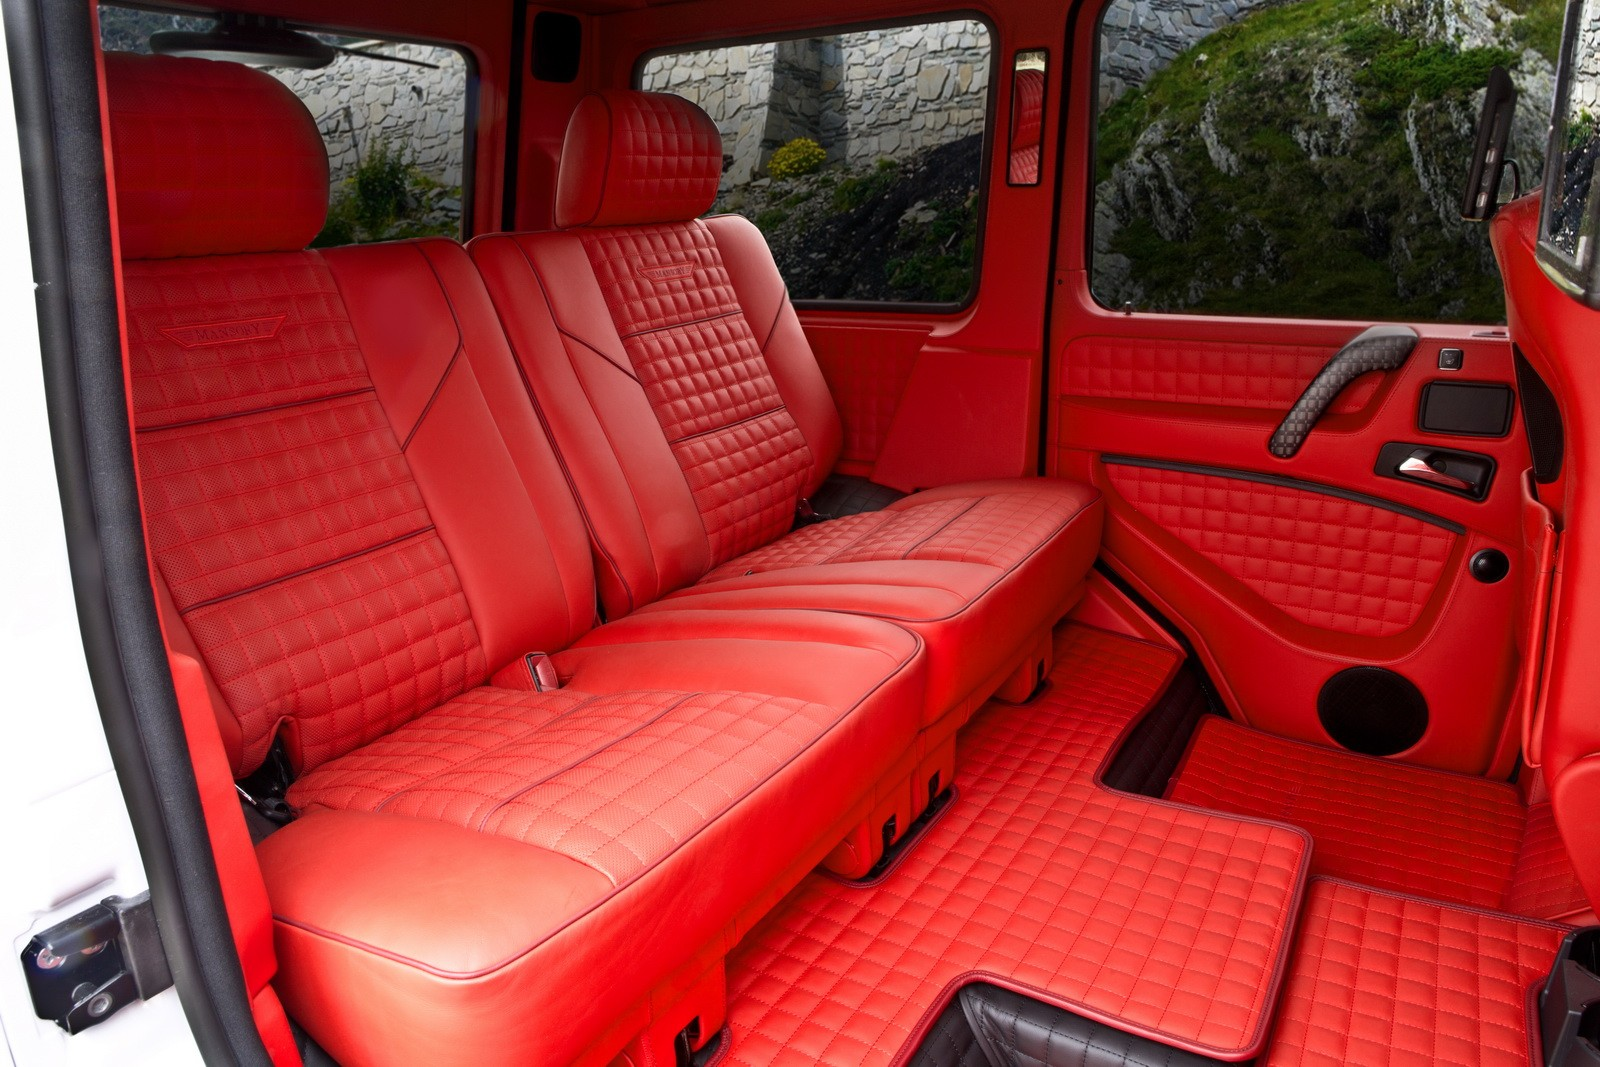 mansorys gronos has been updated is still a wild g class autoevolution - G Wagon Red Interior